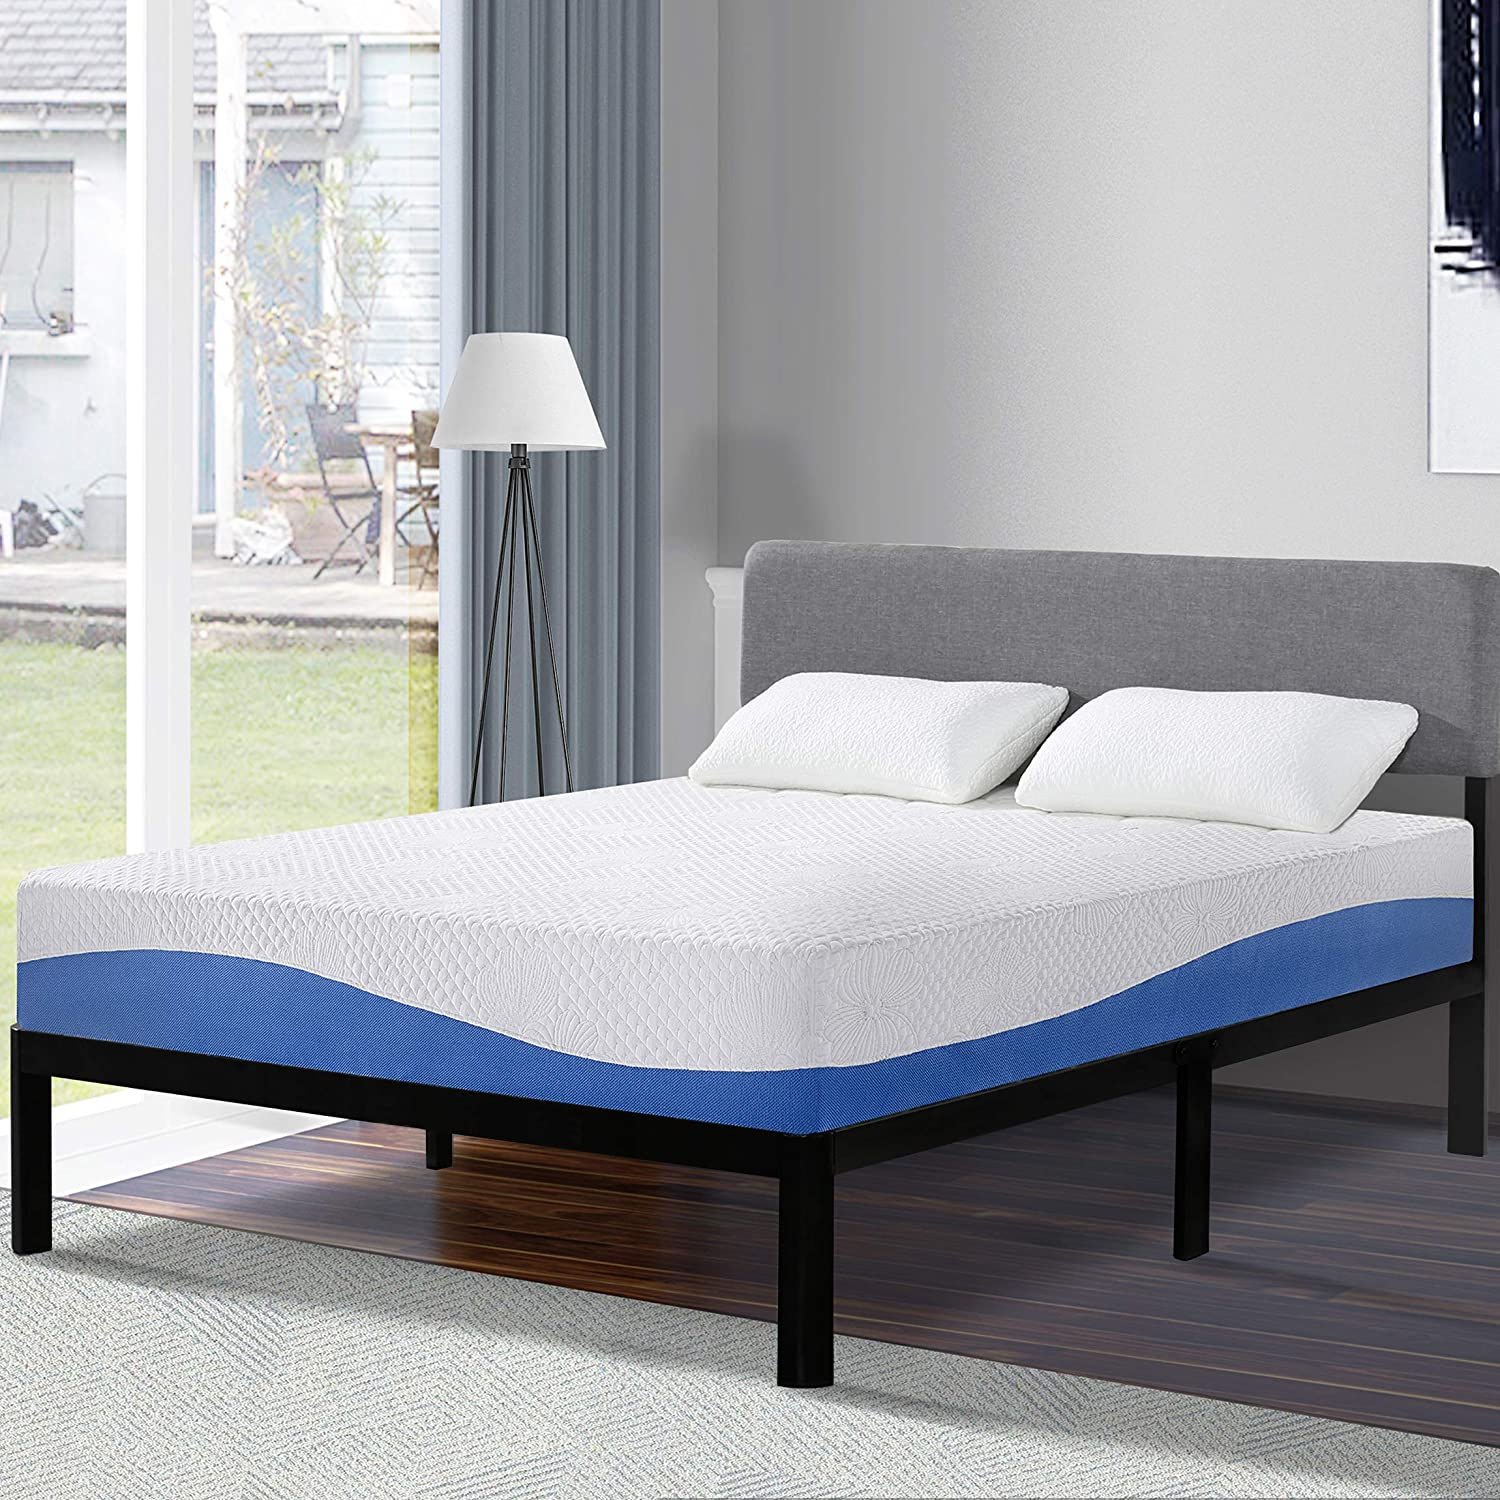 Image result for olee sleep mattress